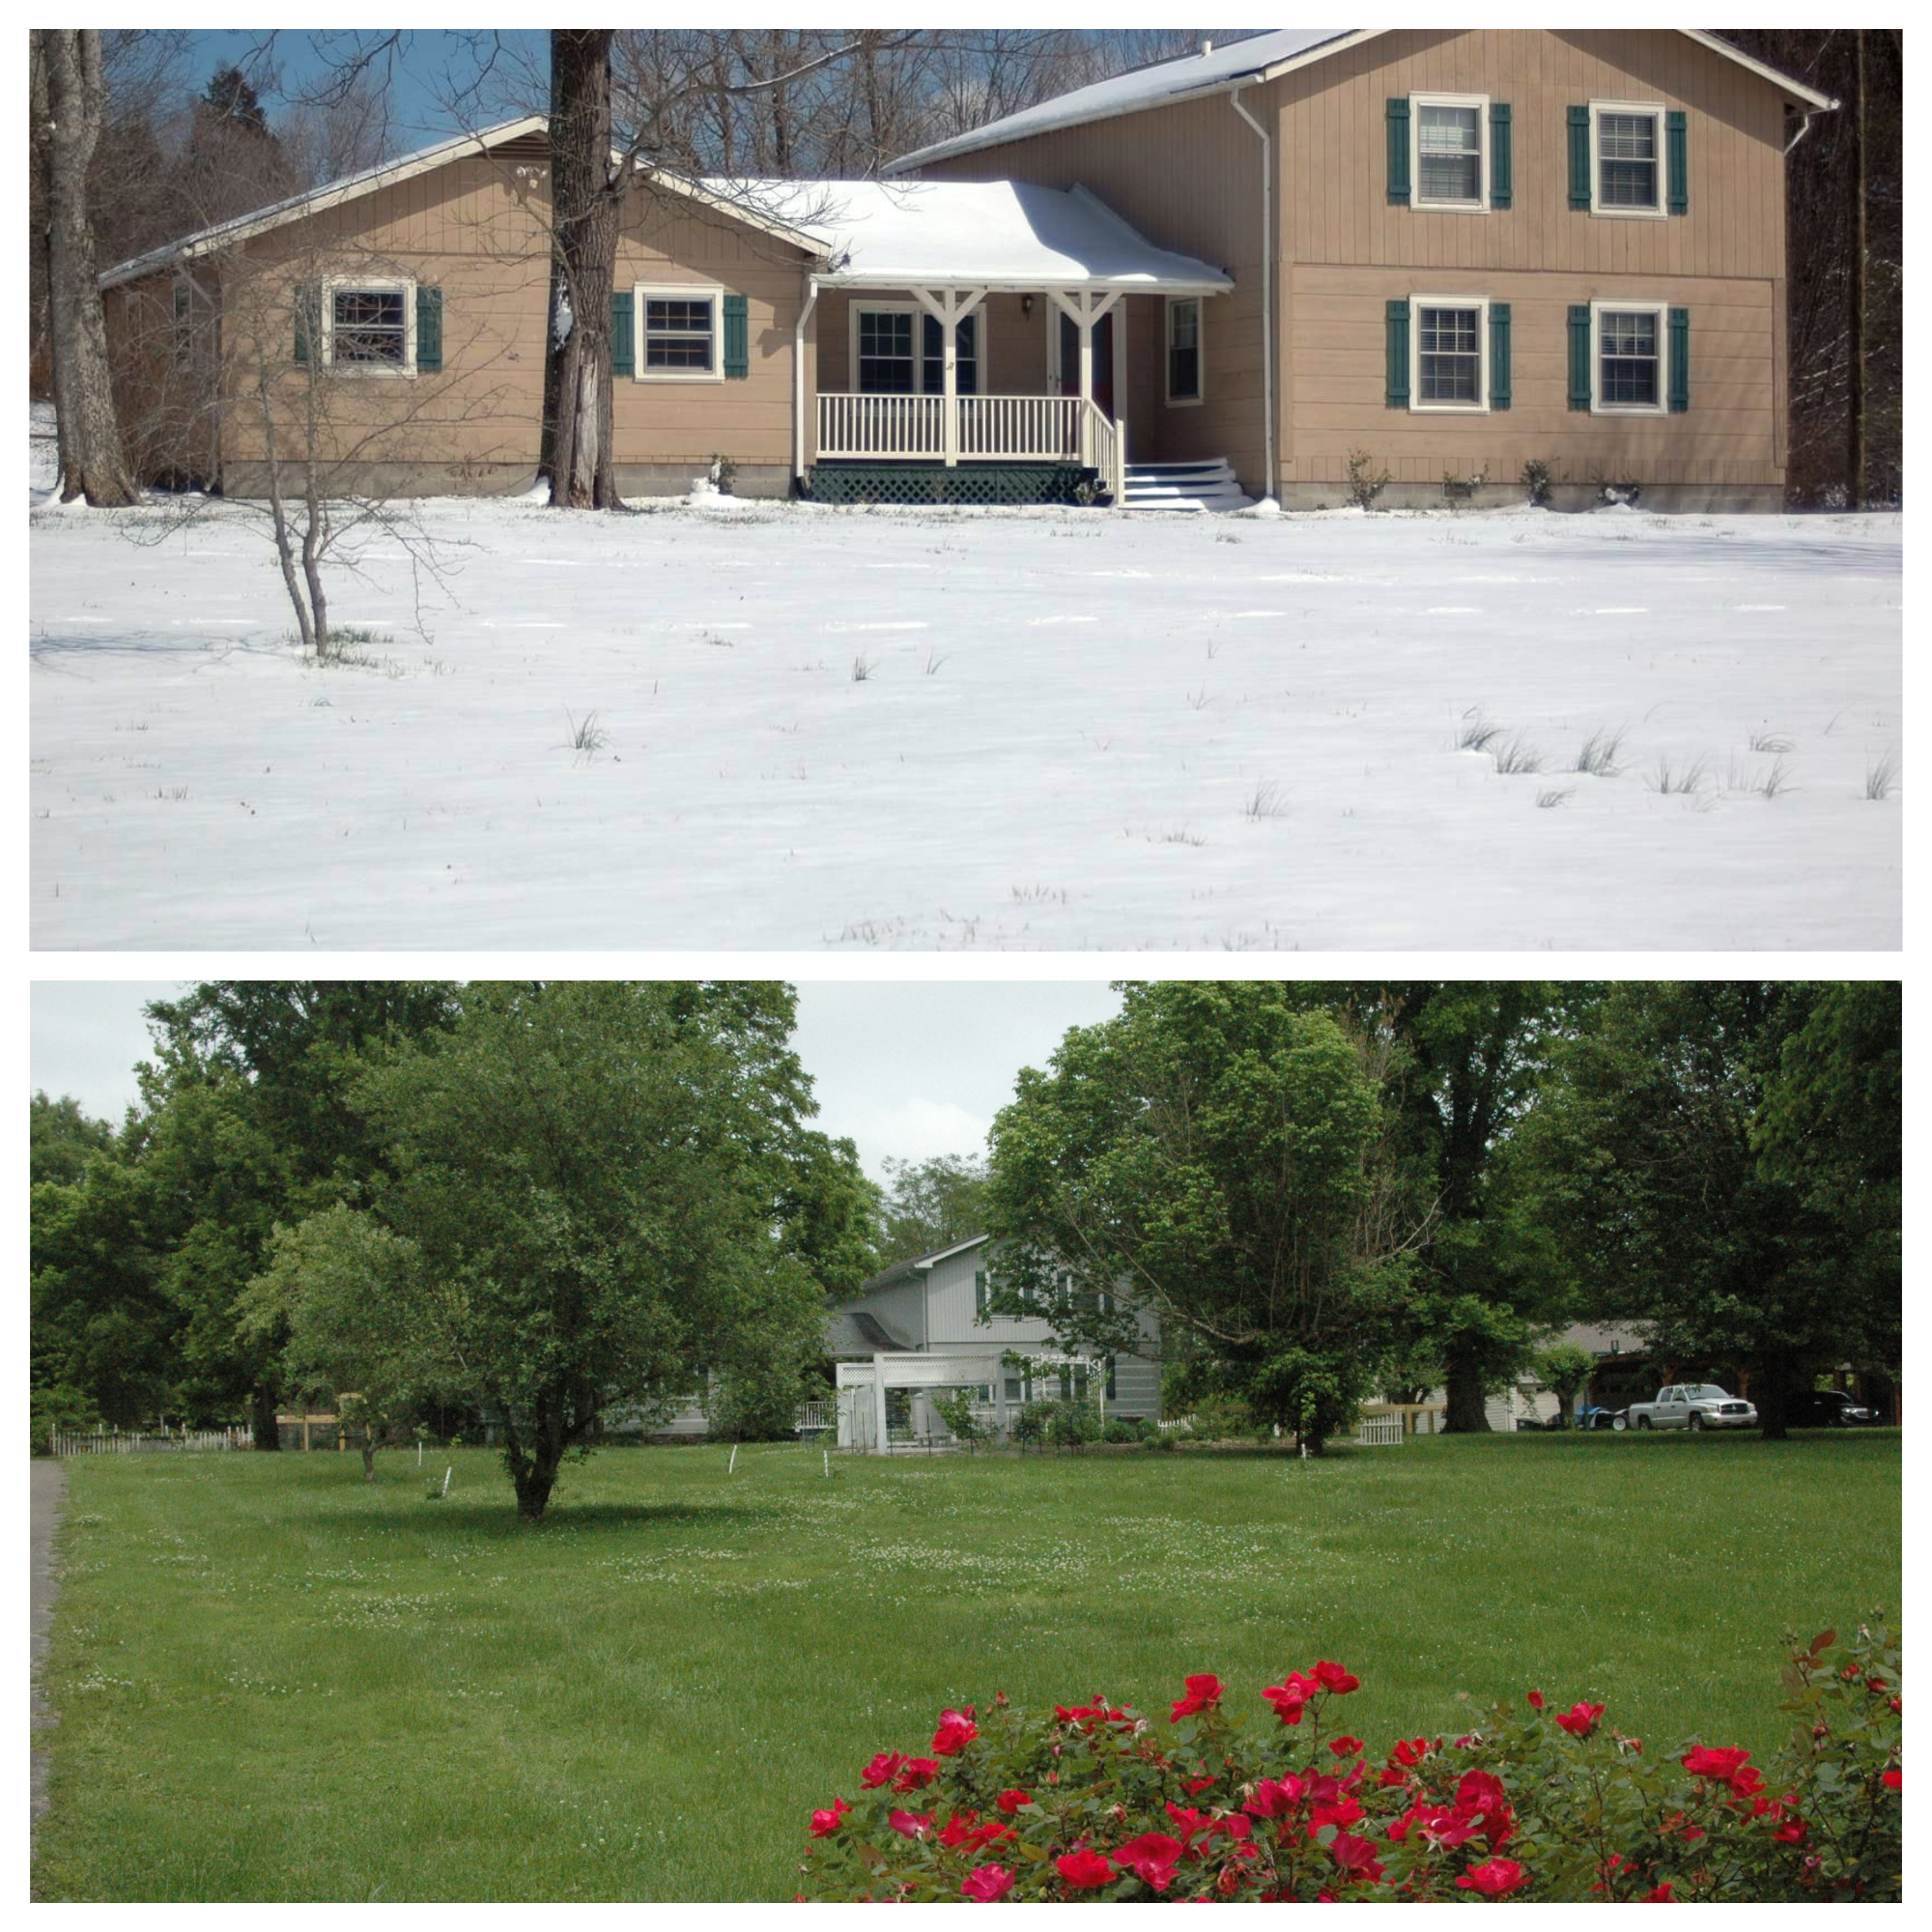 The first picture is how the house looked when we bought it. Apparently they didn't like living in a log home so they painted it! The second picture is what our homestead looks like now. In case you wondered, most of my gardens are behind the house.